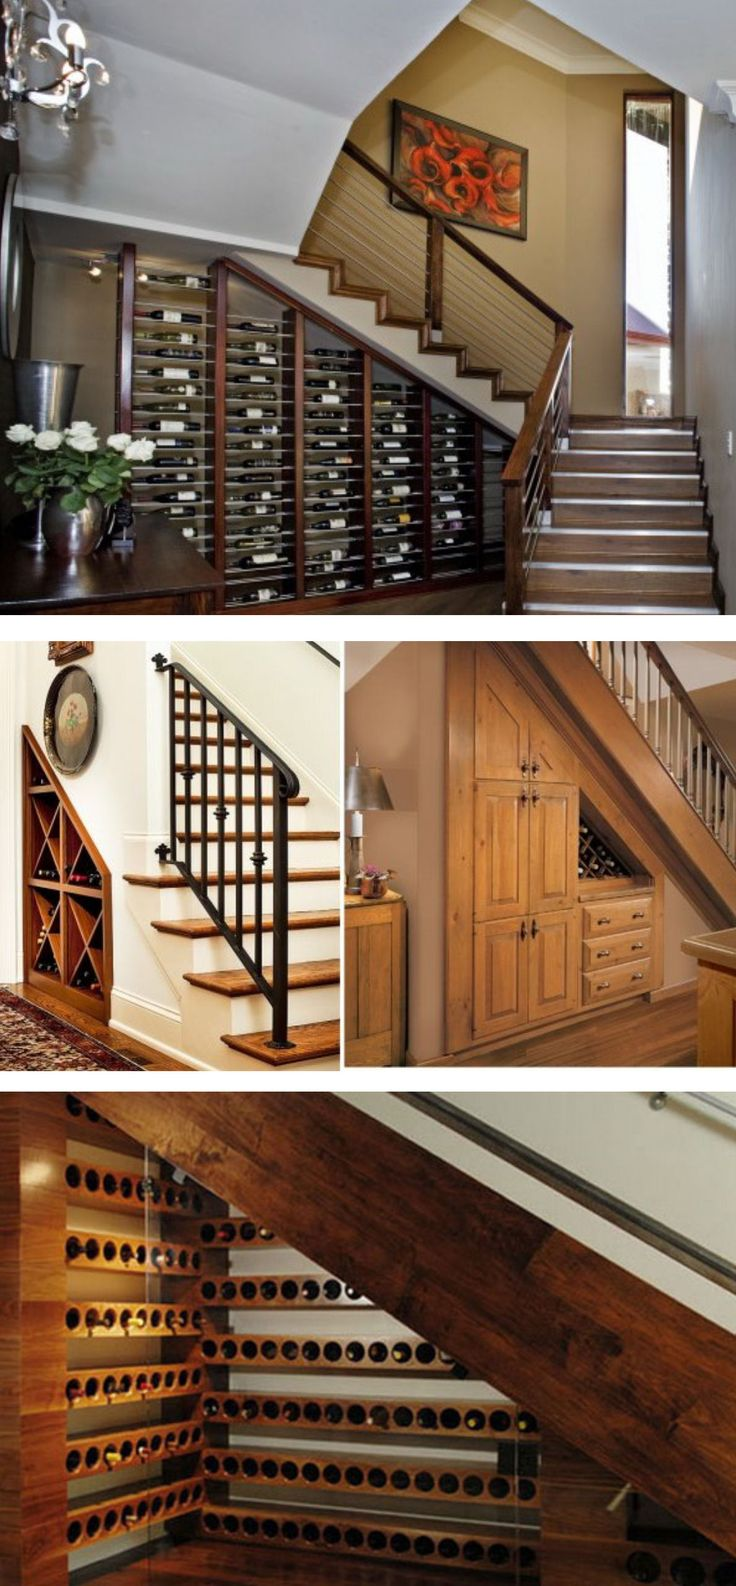 Kitchen Cabinets Under Stairs under stairs kitchen storage - hypnofitmaui